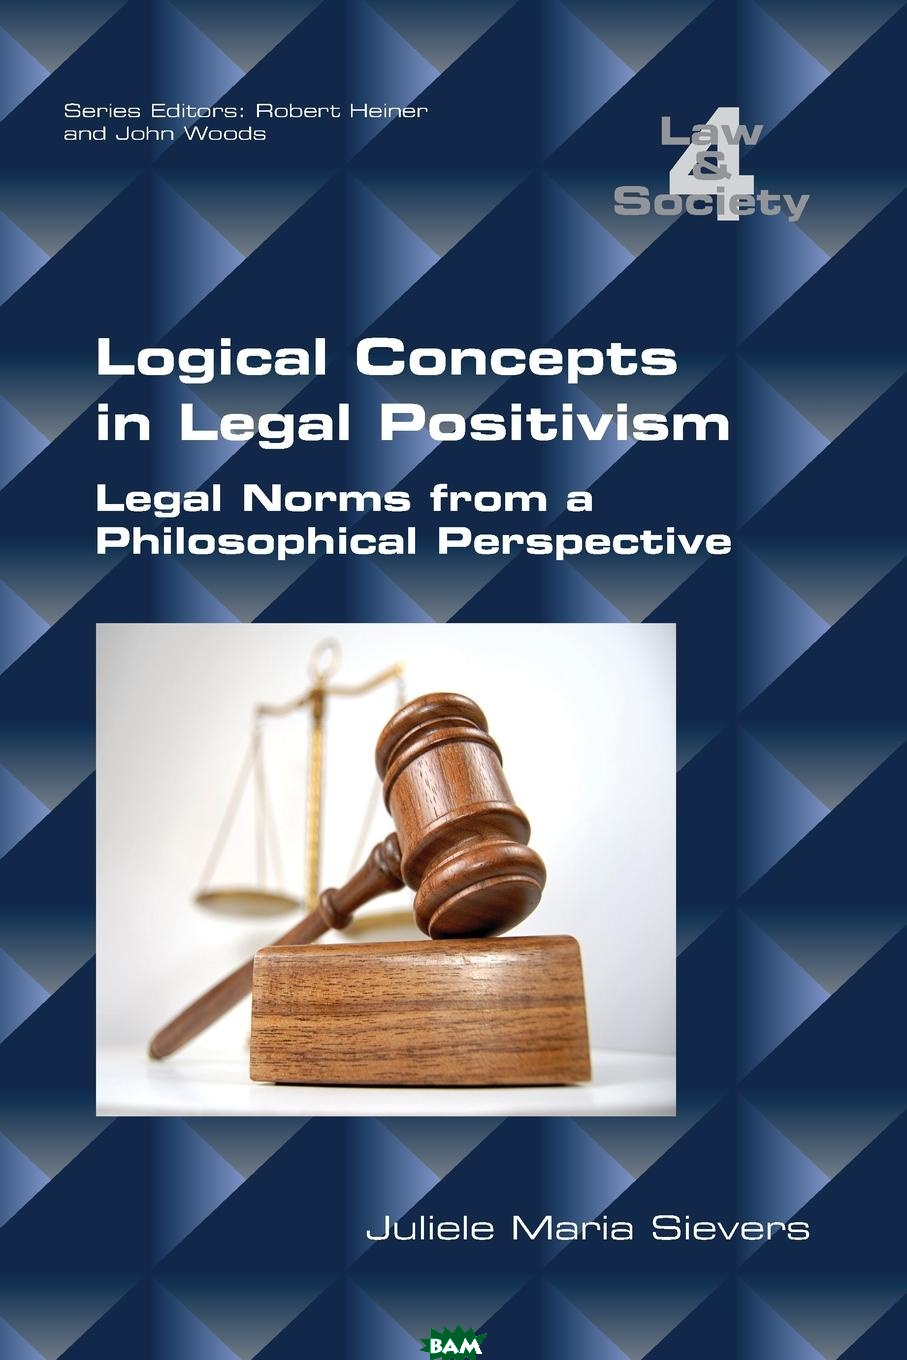 Купить Logical Concepts in Legal Positivism. Legal Norms from a Philosophical Perspective, Juliele Maria Sievers, 9781848902329